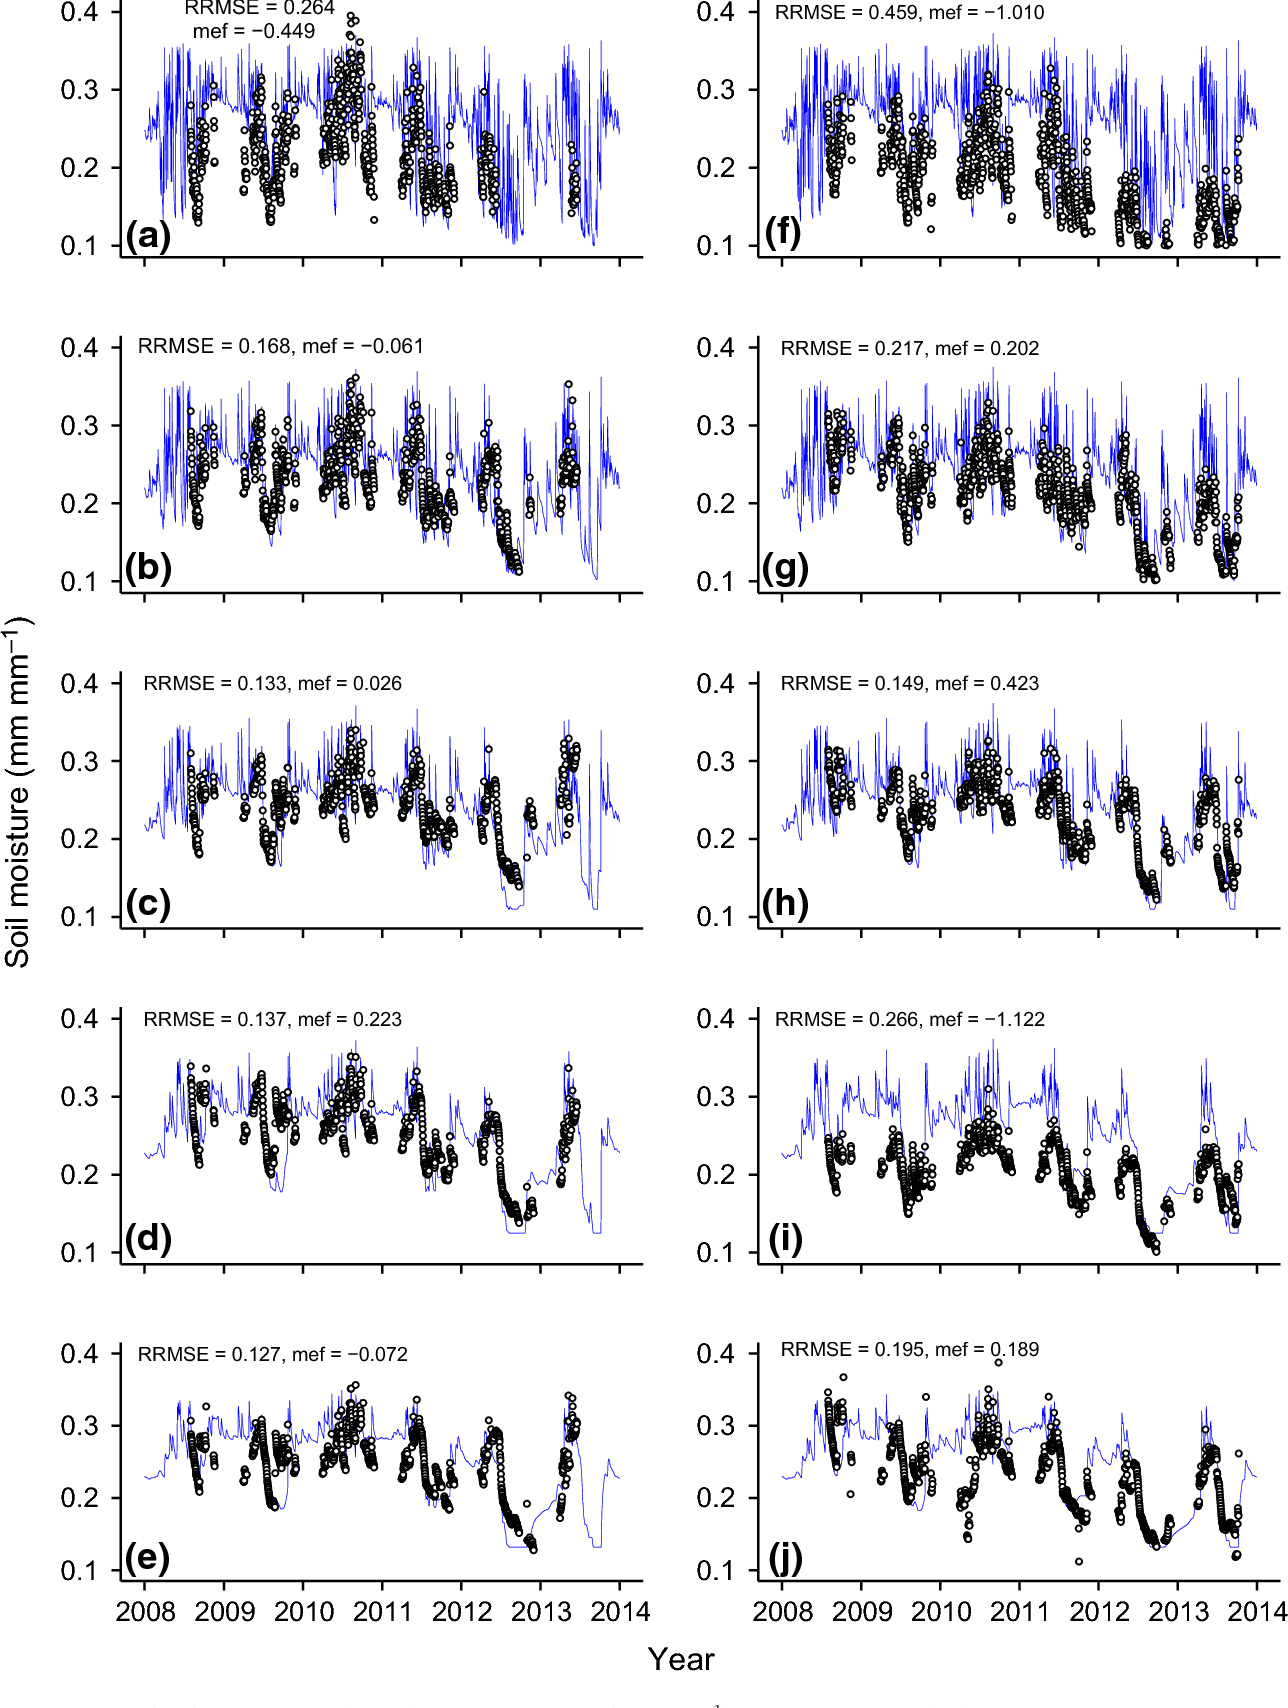 Fig. 4 Simulated (line) and observed (points) soil water content (mm mm 1) in continuous corn (a–e) and continuous corn with winter rye cover crop (f–j) across five soil depths 5 cm (a, f), 10 cm (b, g), 15 cm (c, h), 35 cm (d, i), and 50 cm (e, j).